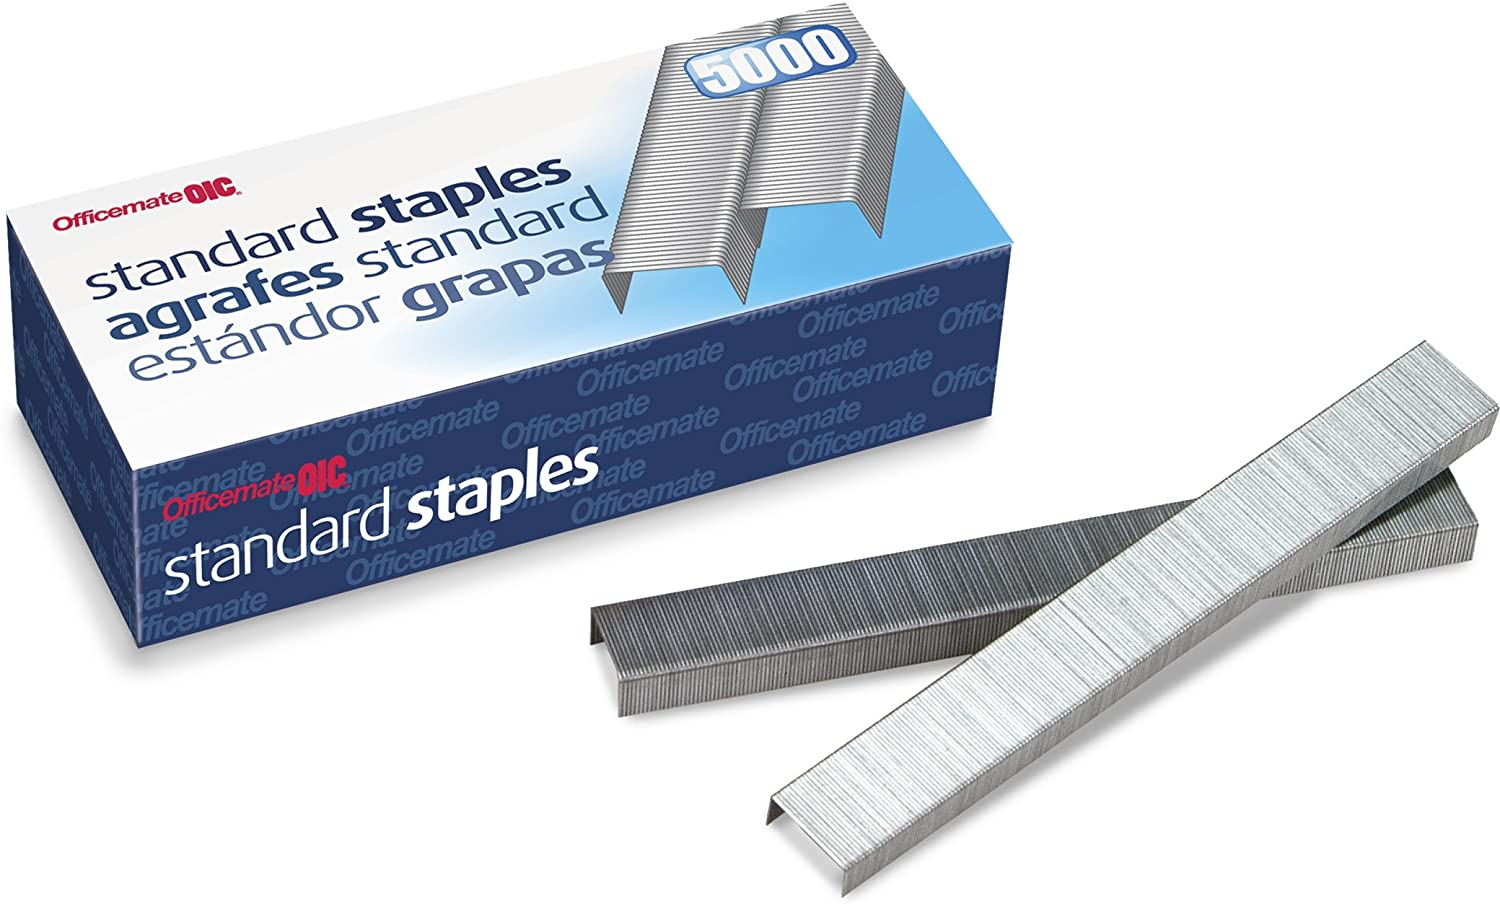 Officemate Standard Staples, 210 per Strip, 20 Sheets Capacity, 5, 000 per Box (91900) : General Purpose Staples : Office Products